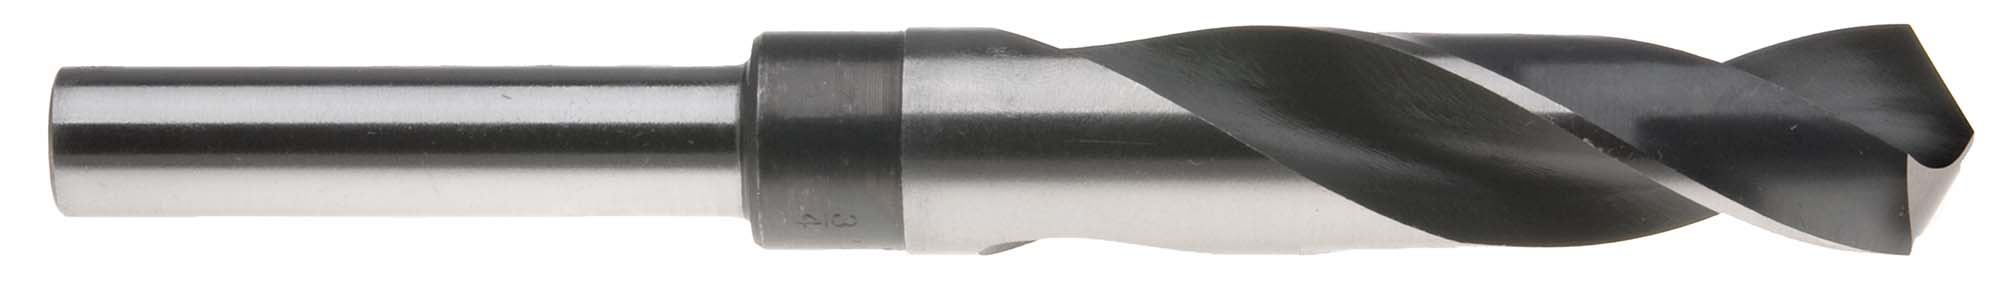 "1-1/16"" USA Drill Bit with 1/2"" Shank (S+D Type) High Speed Steel"